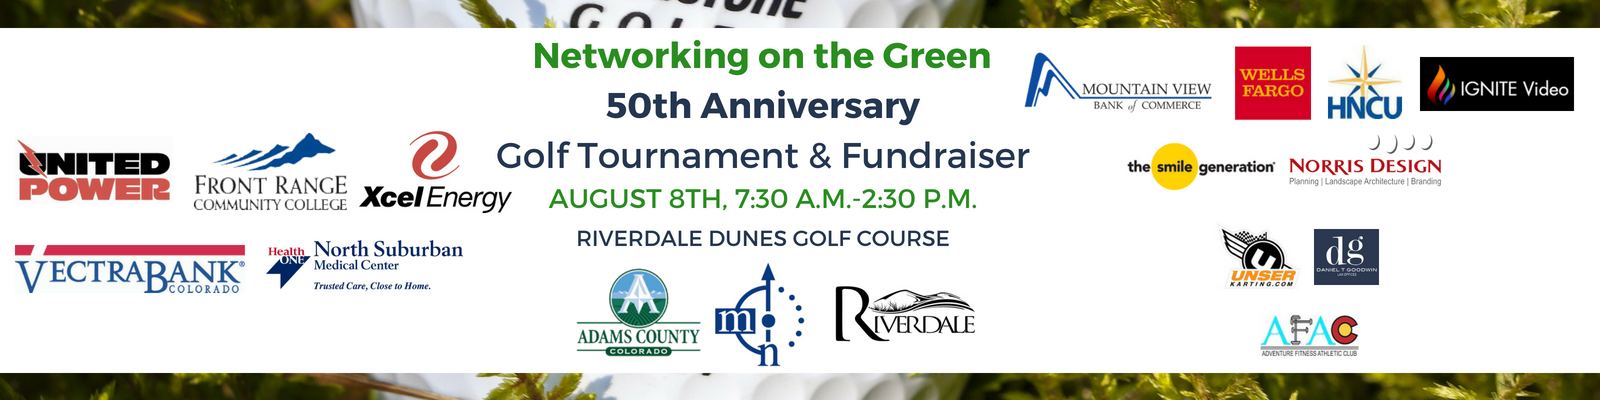 Golf-Tourney-2018-Web-Banner(1).png